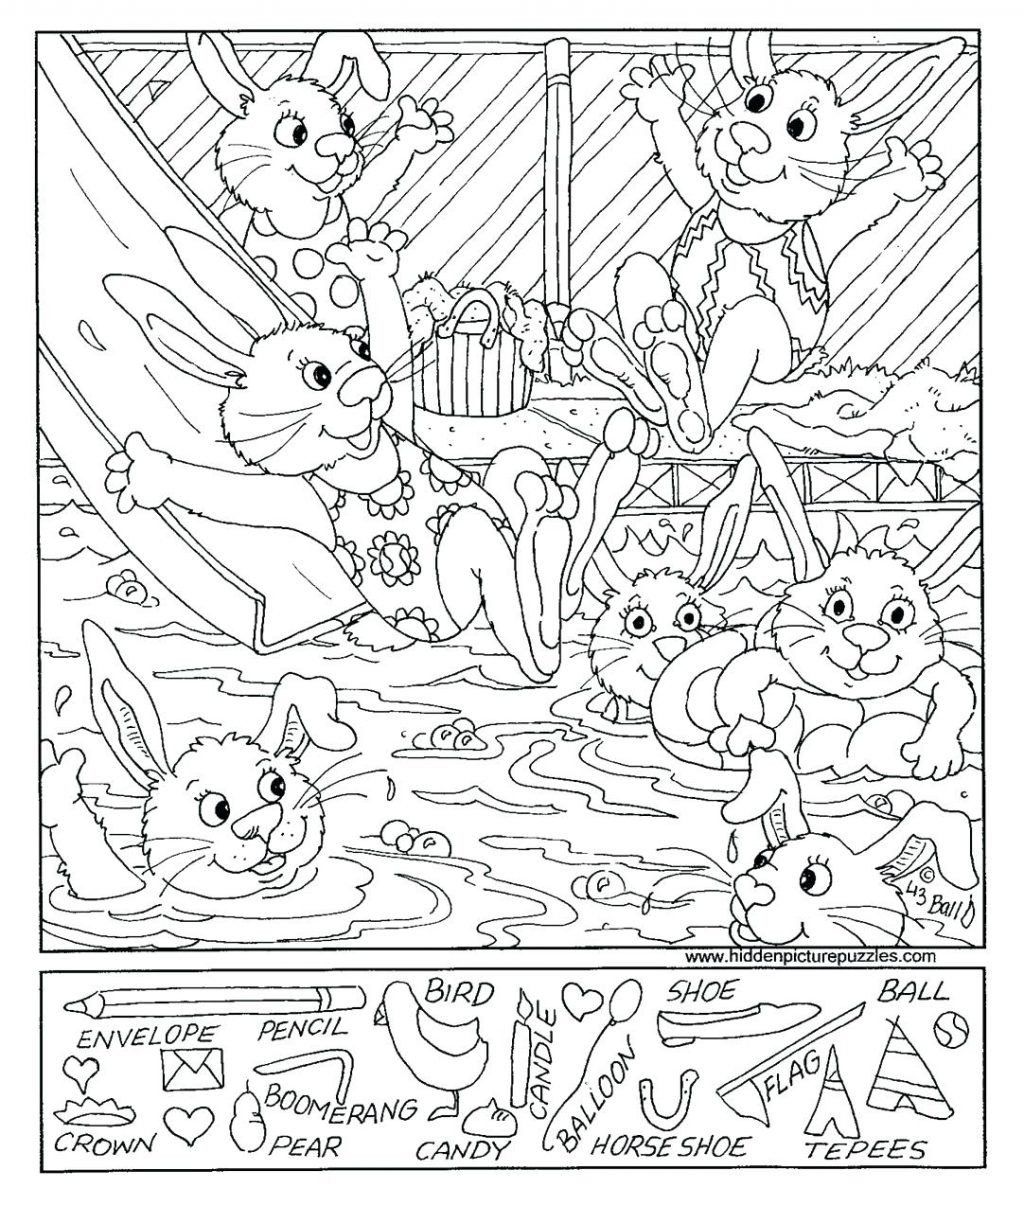 Puzzles Drawing At Getdrawings Com Free For Personal Use Puzzles